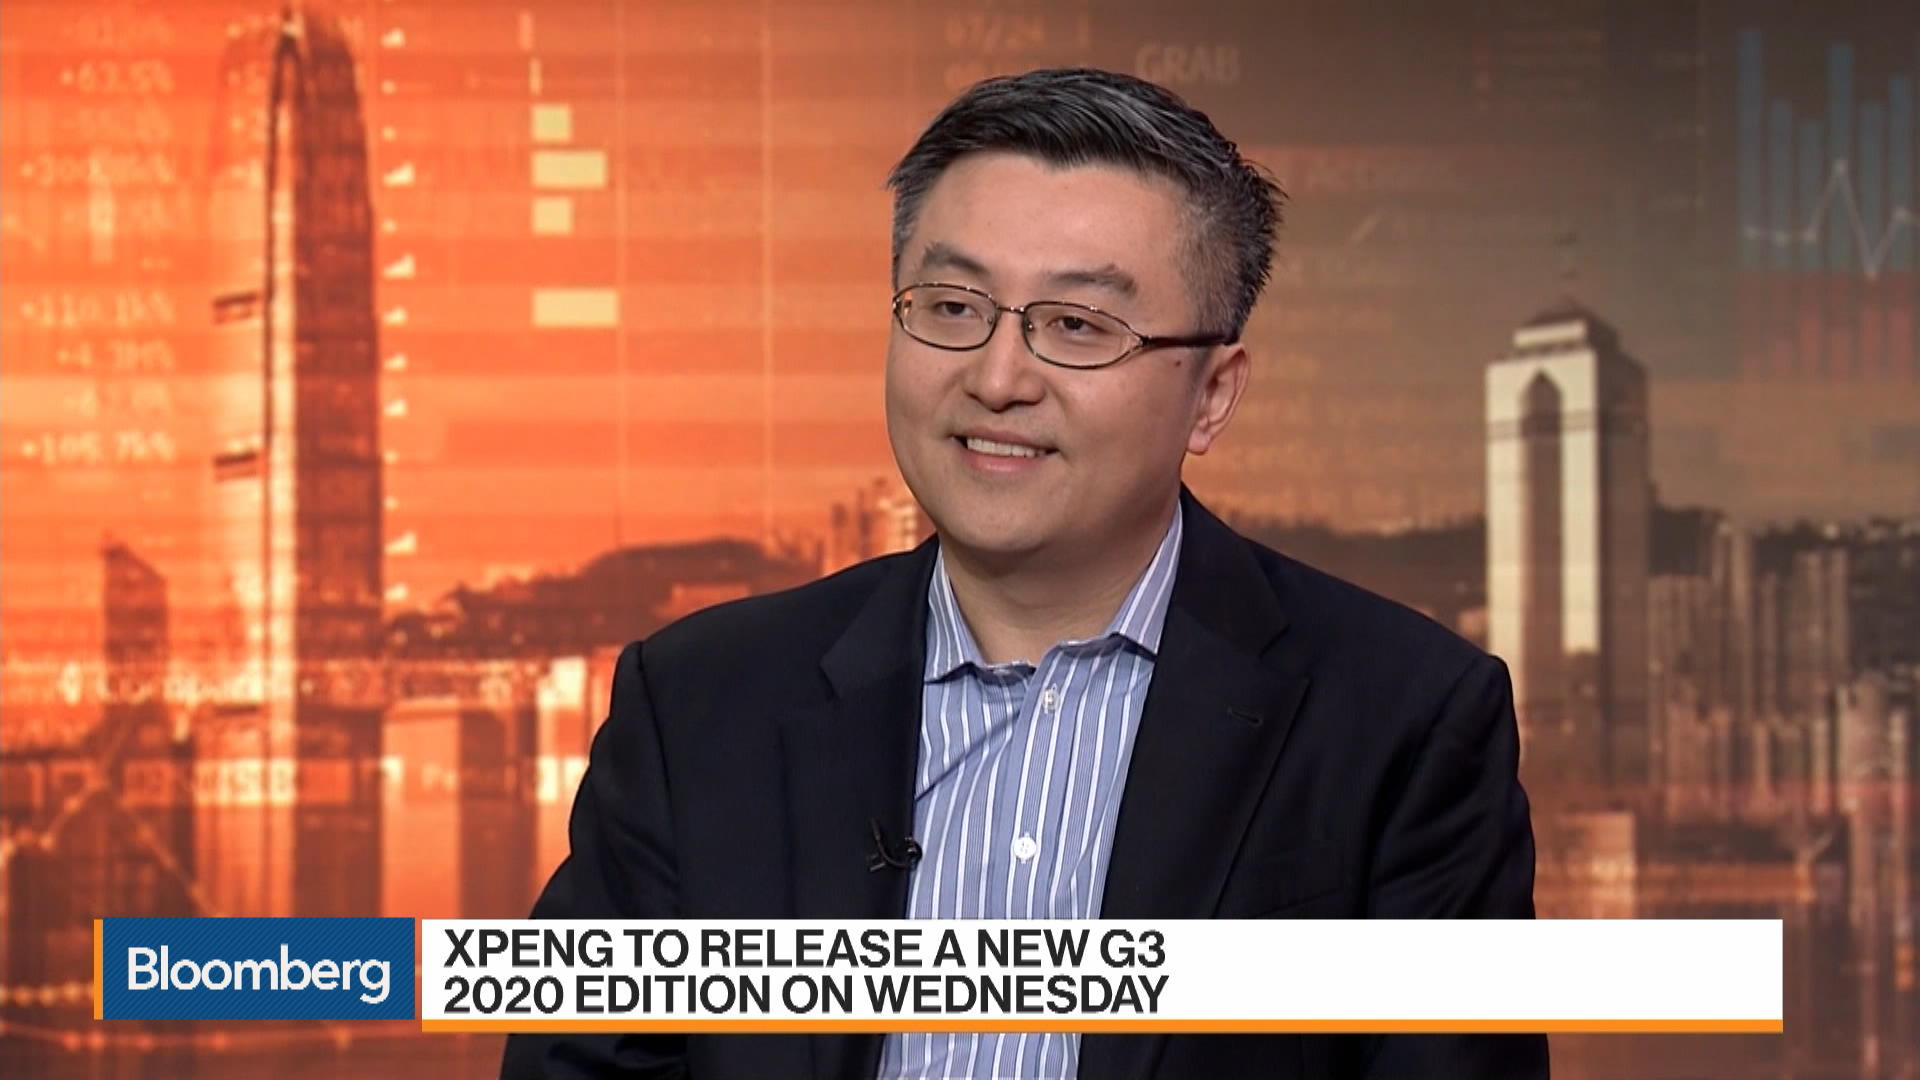 Xpeng Motors's Gu on G3 2020 Edition, EV Trends, Funding Round